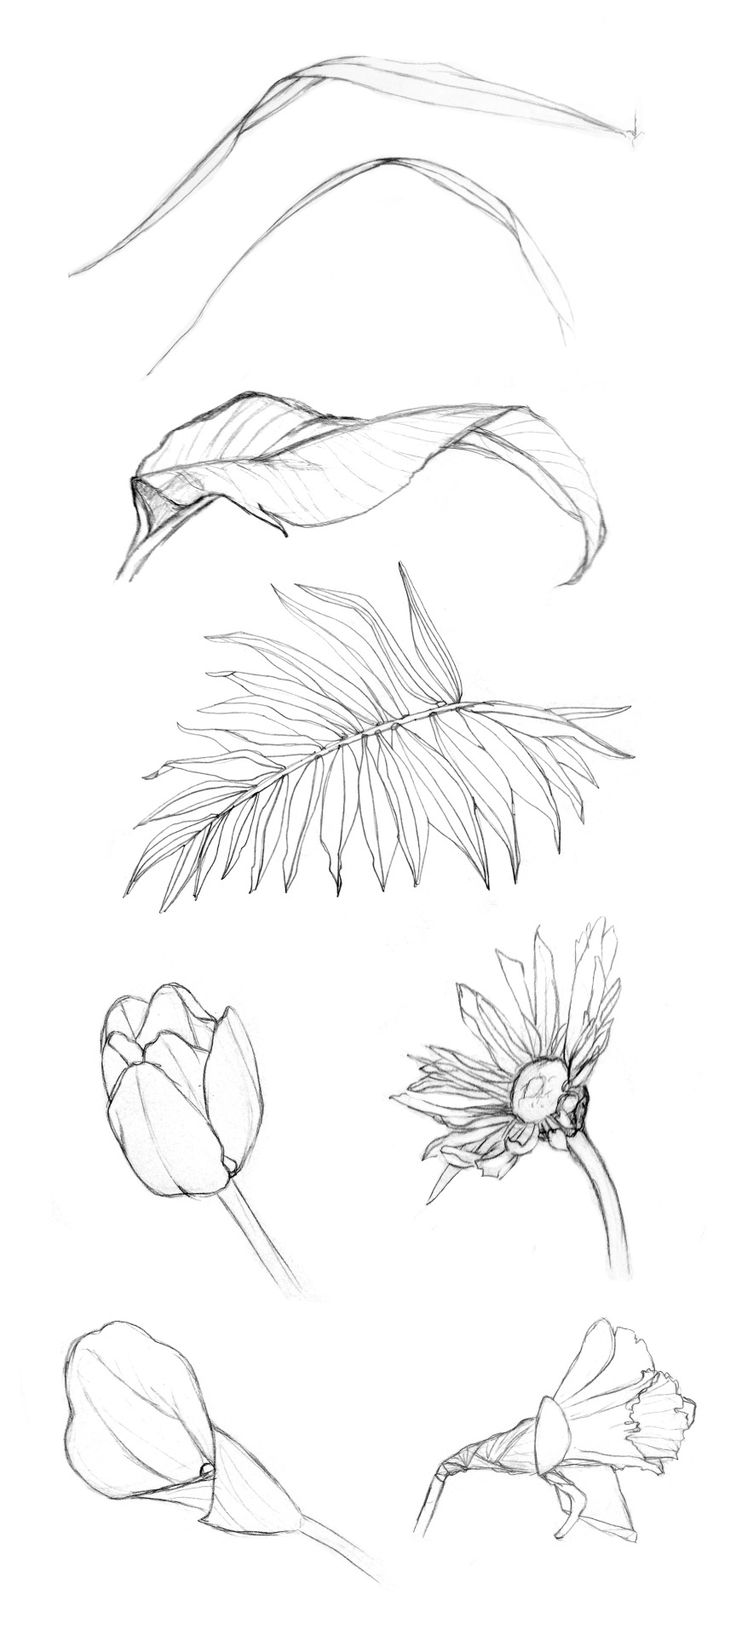 Contour Line Drawing Plant : The best flower drawings ideas on pinterest